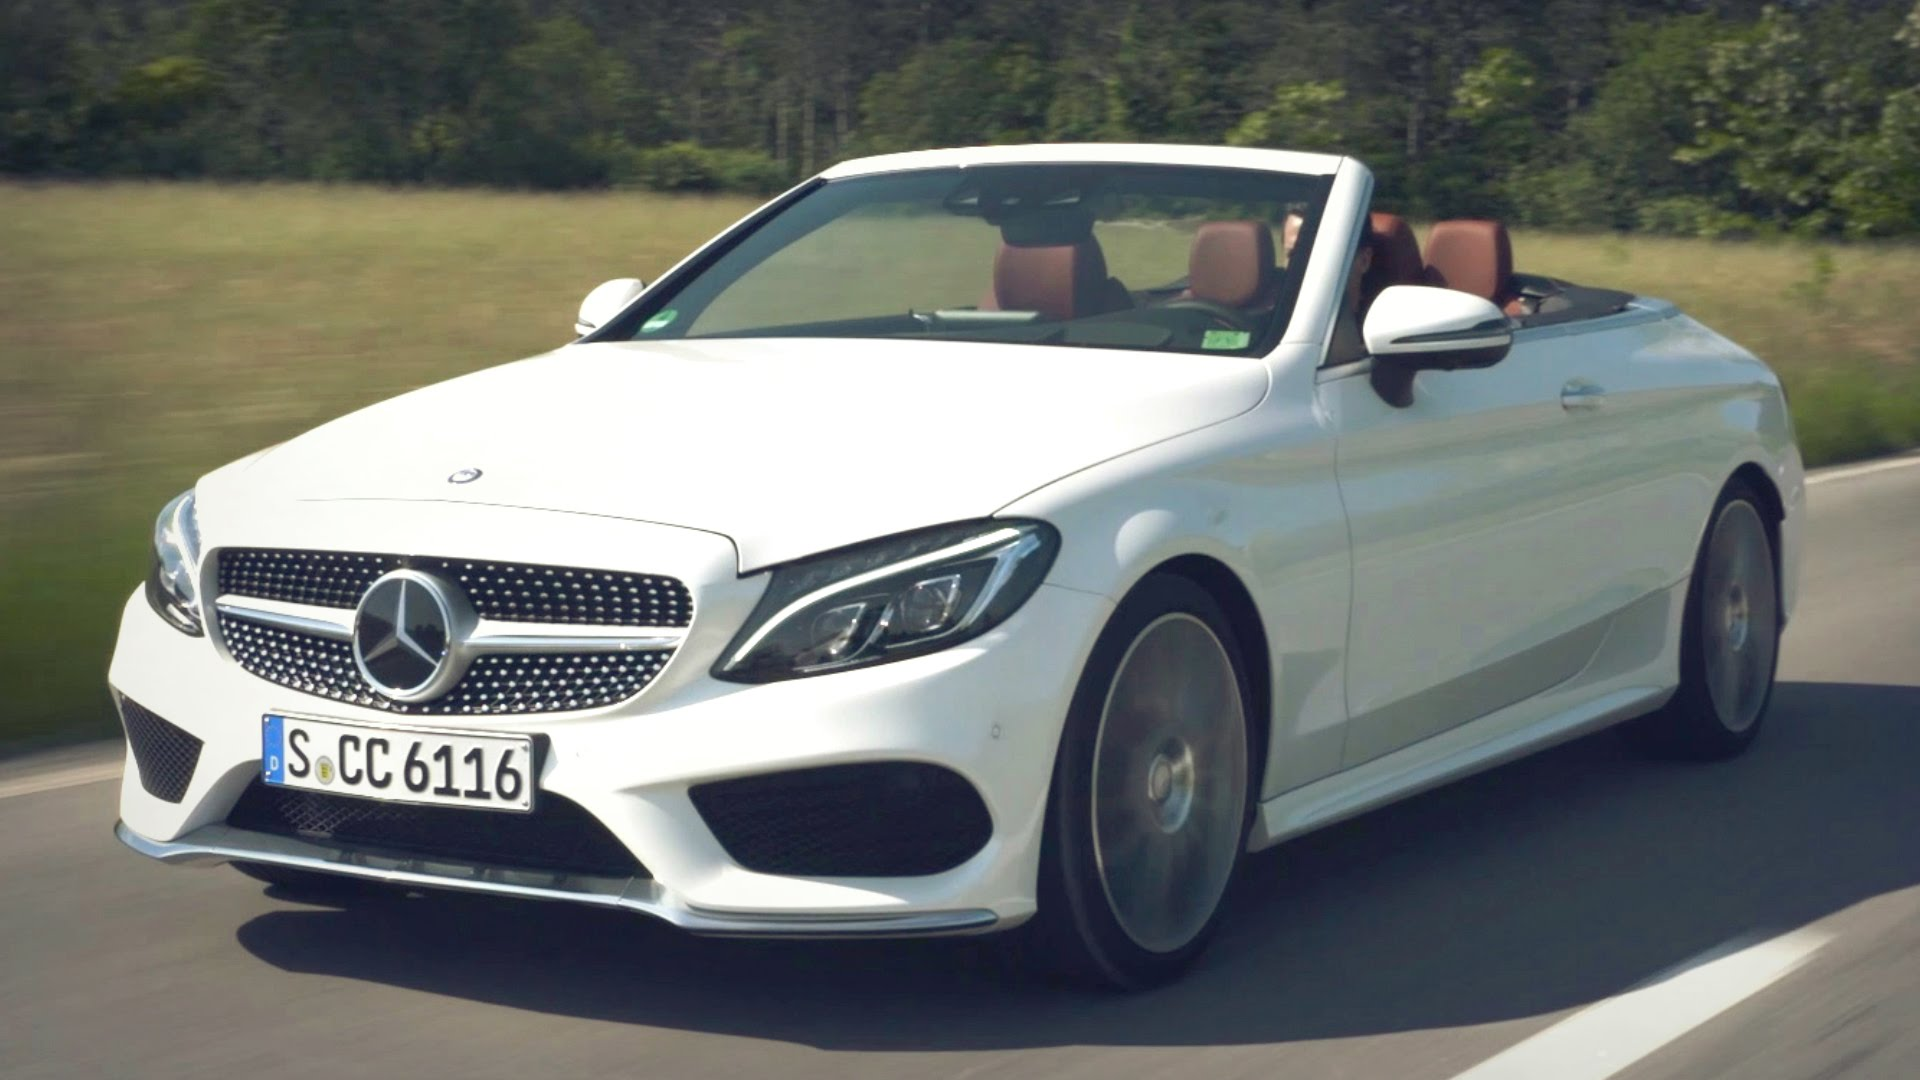 2017 Mercedes C 300 Cabriolet Diamond White Bright - YouTube